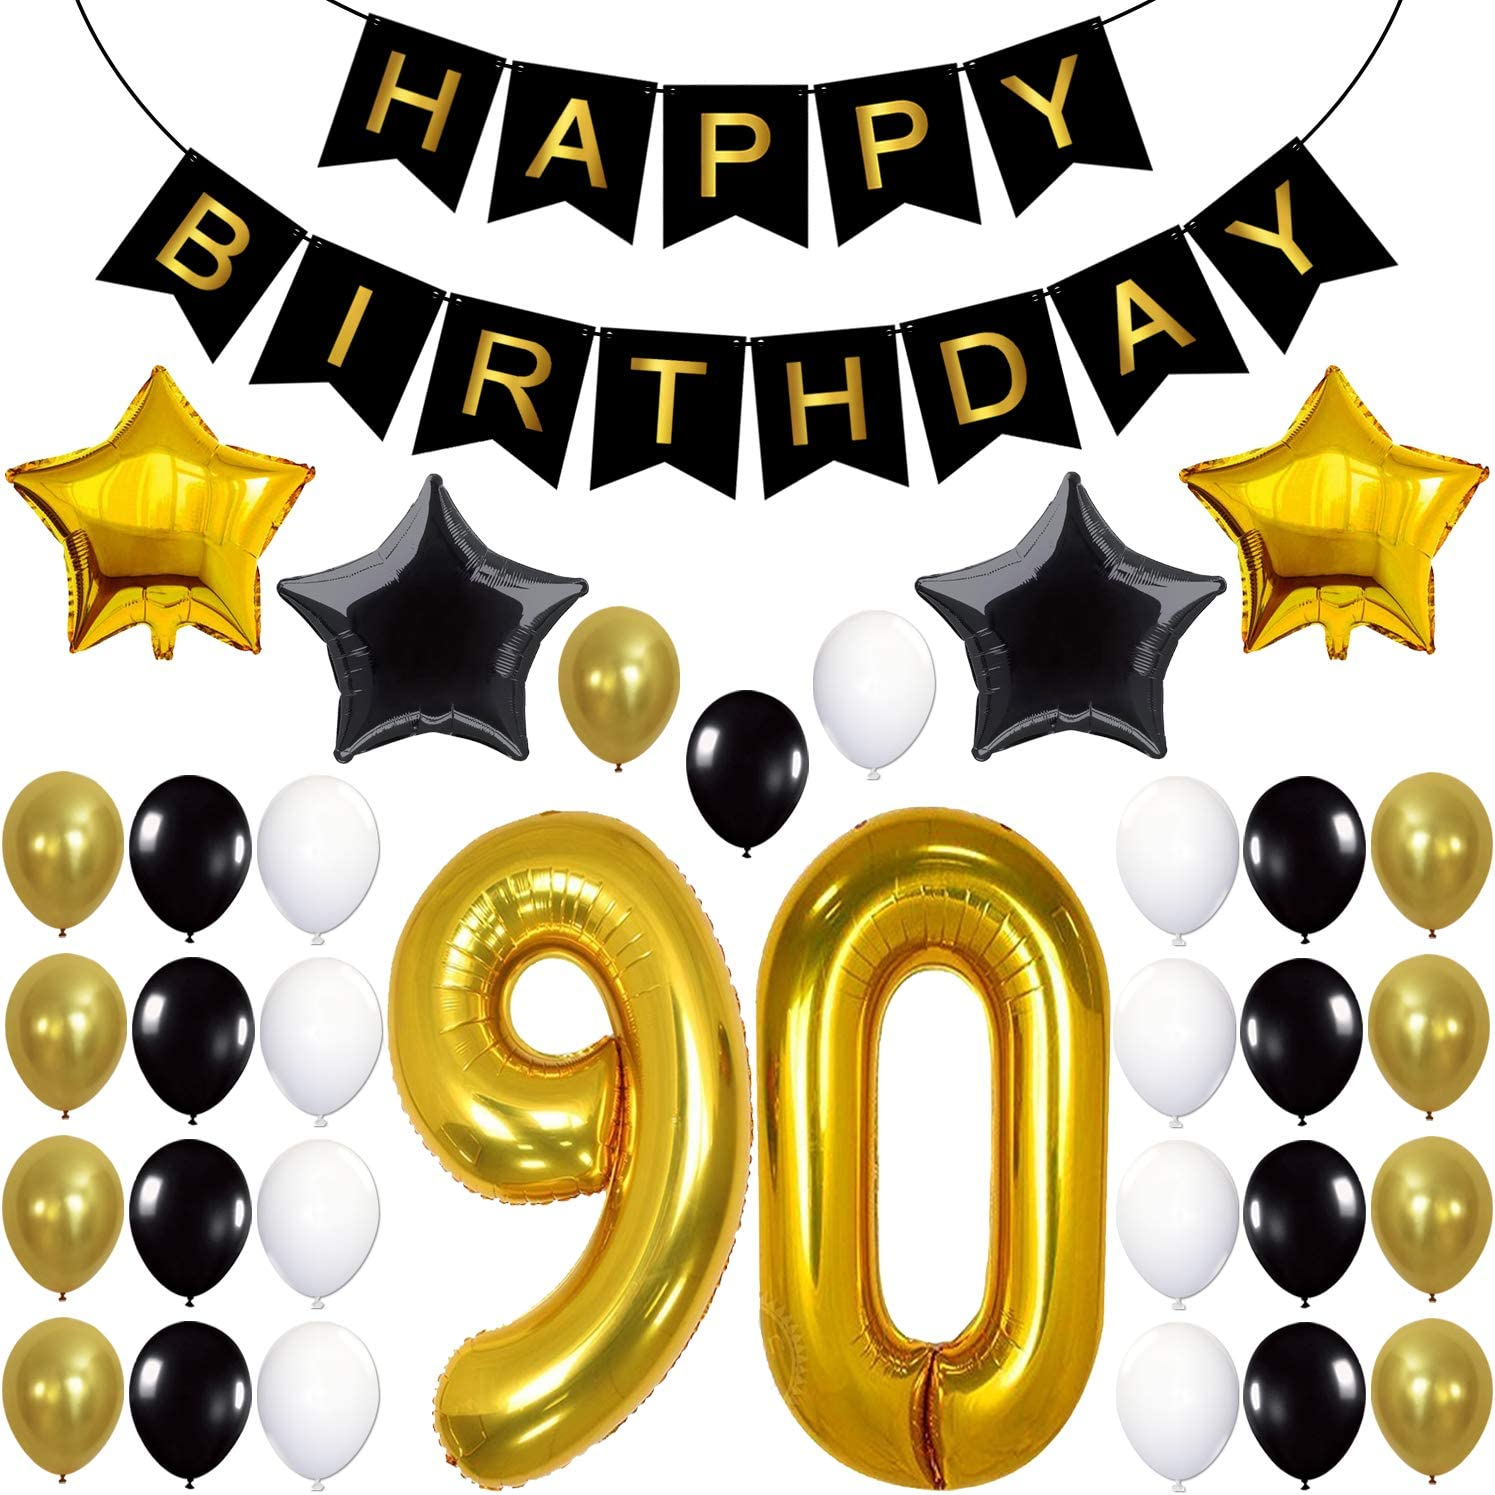 Party City 90Th Birthday Decorations  from images-na.ssl-images-amazon.com